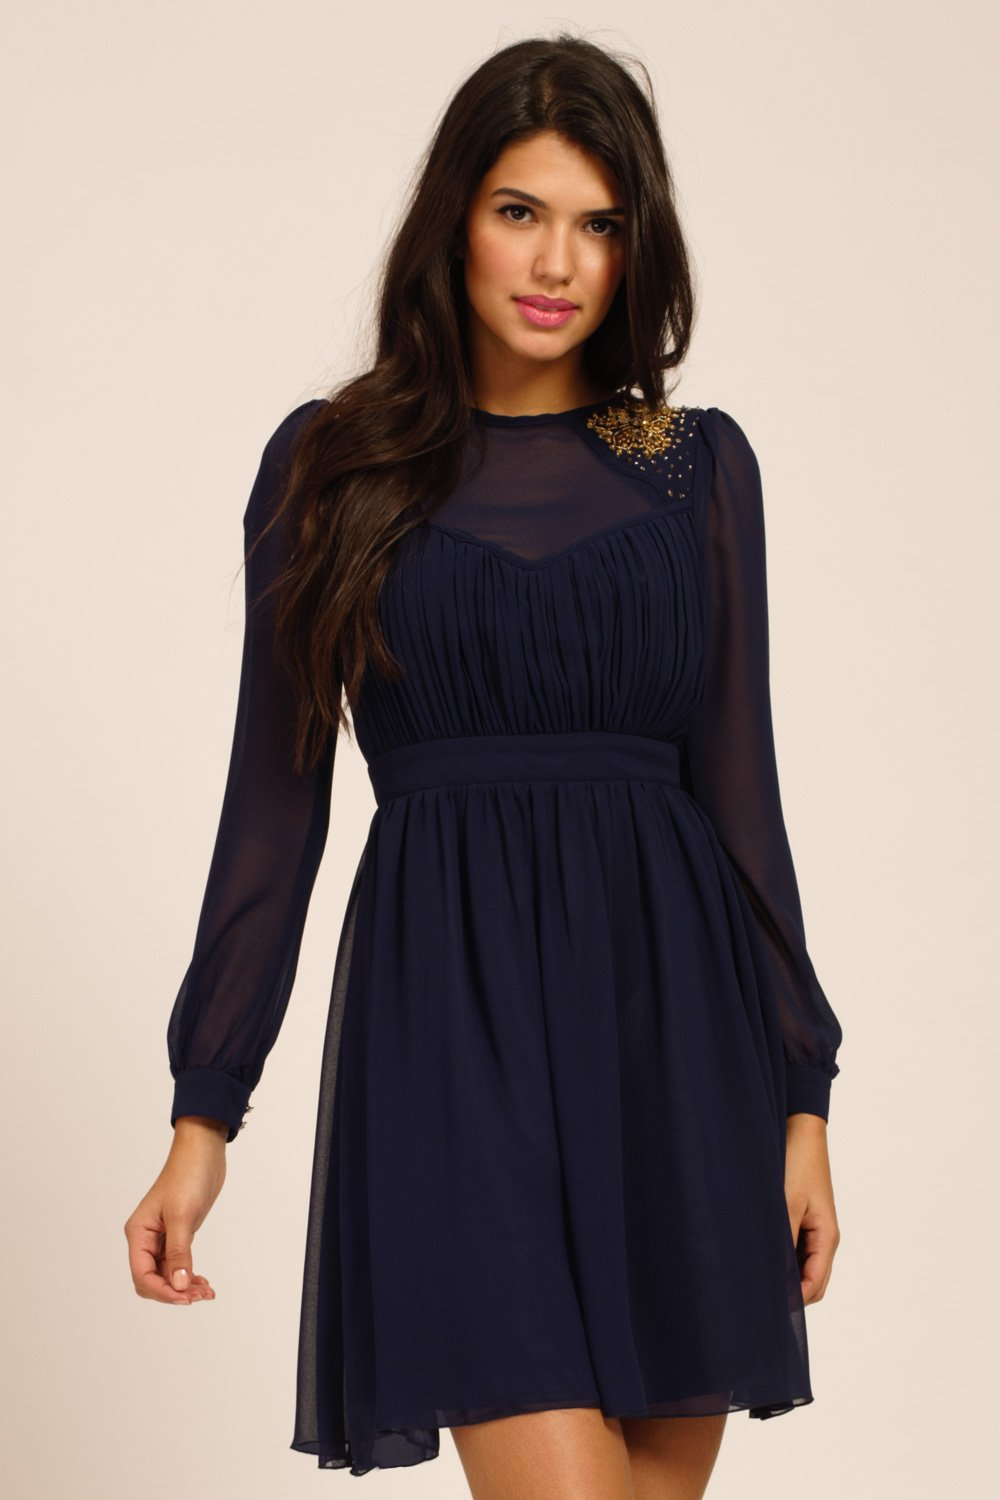 Fit and Flare Cocktail Dress   Dressed Up Girl